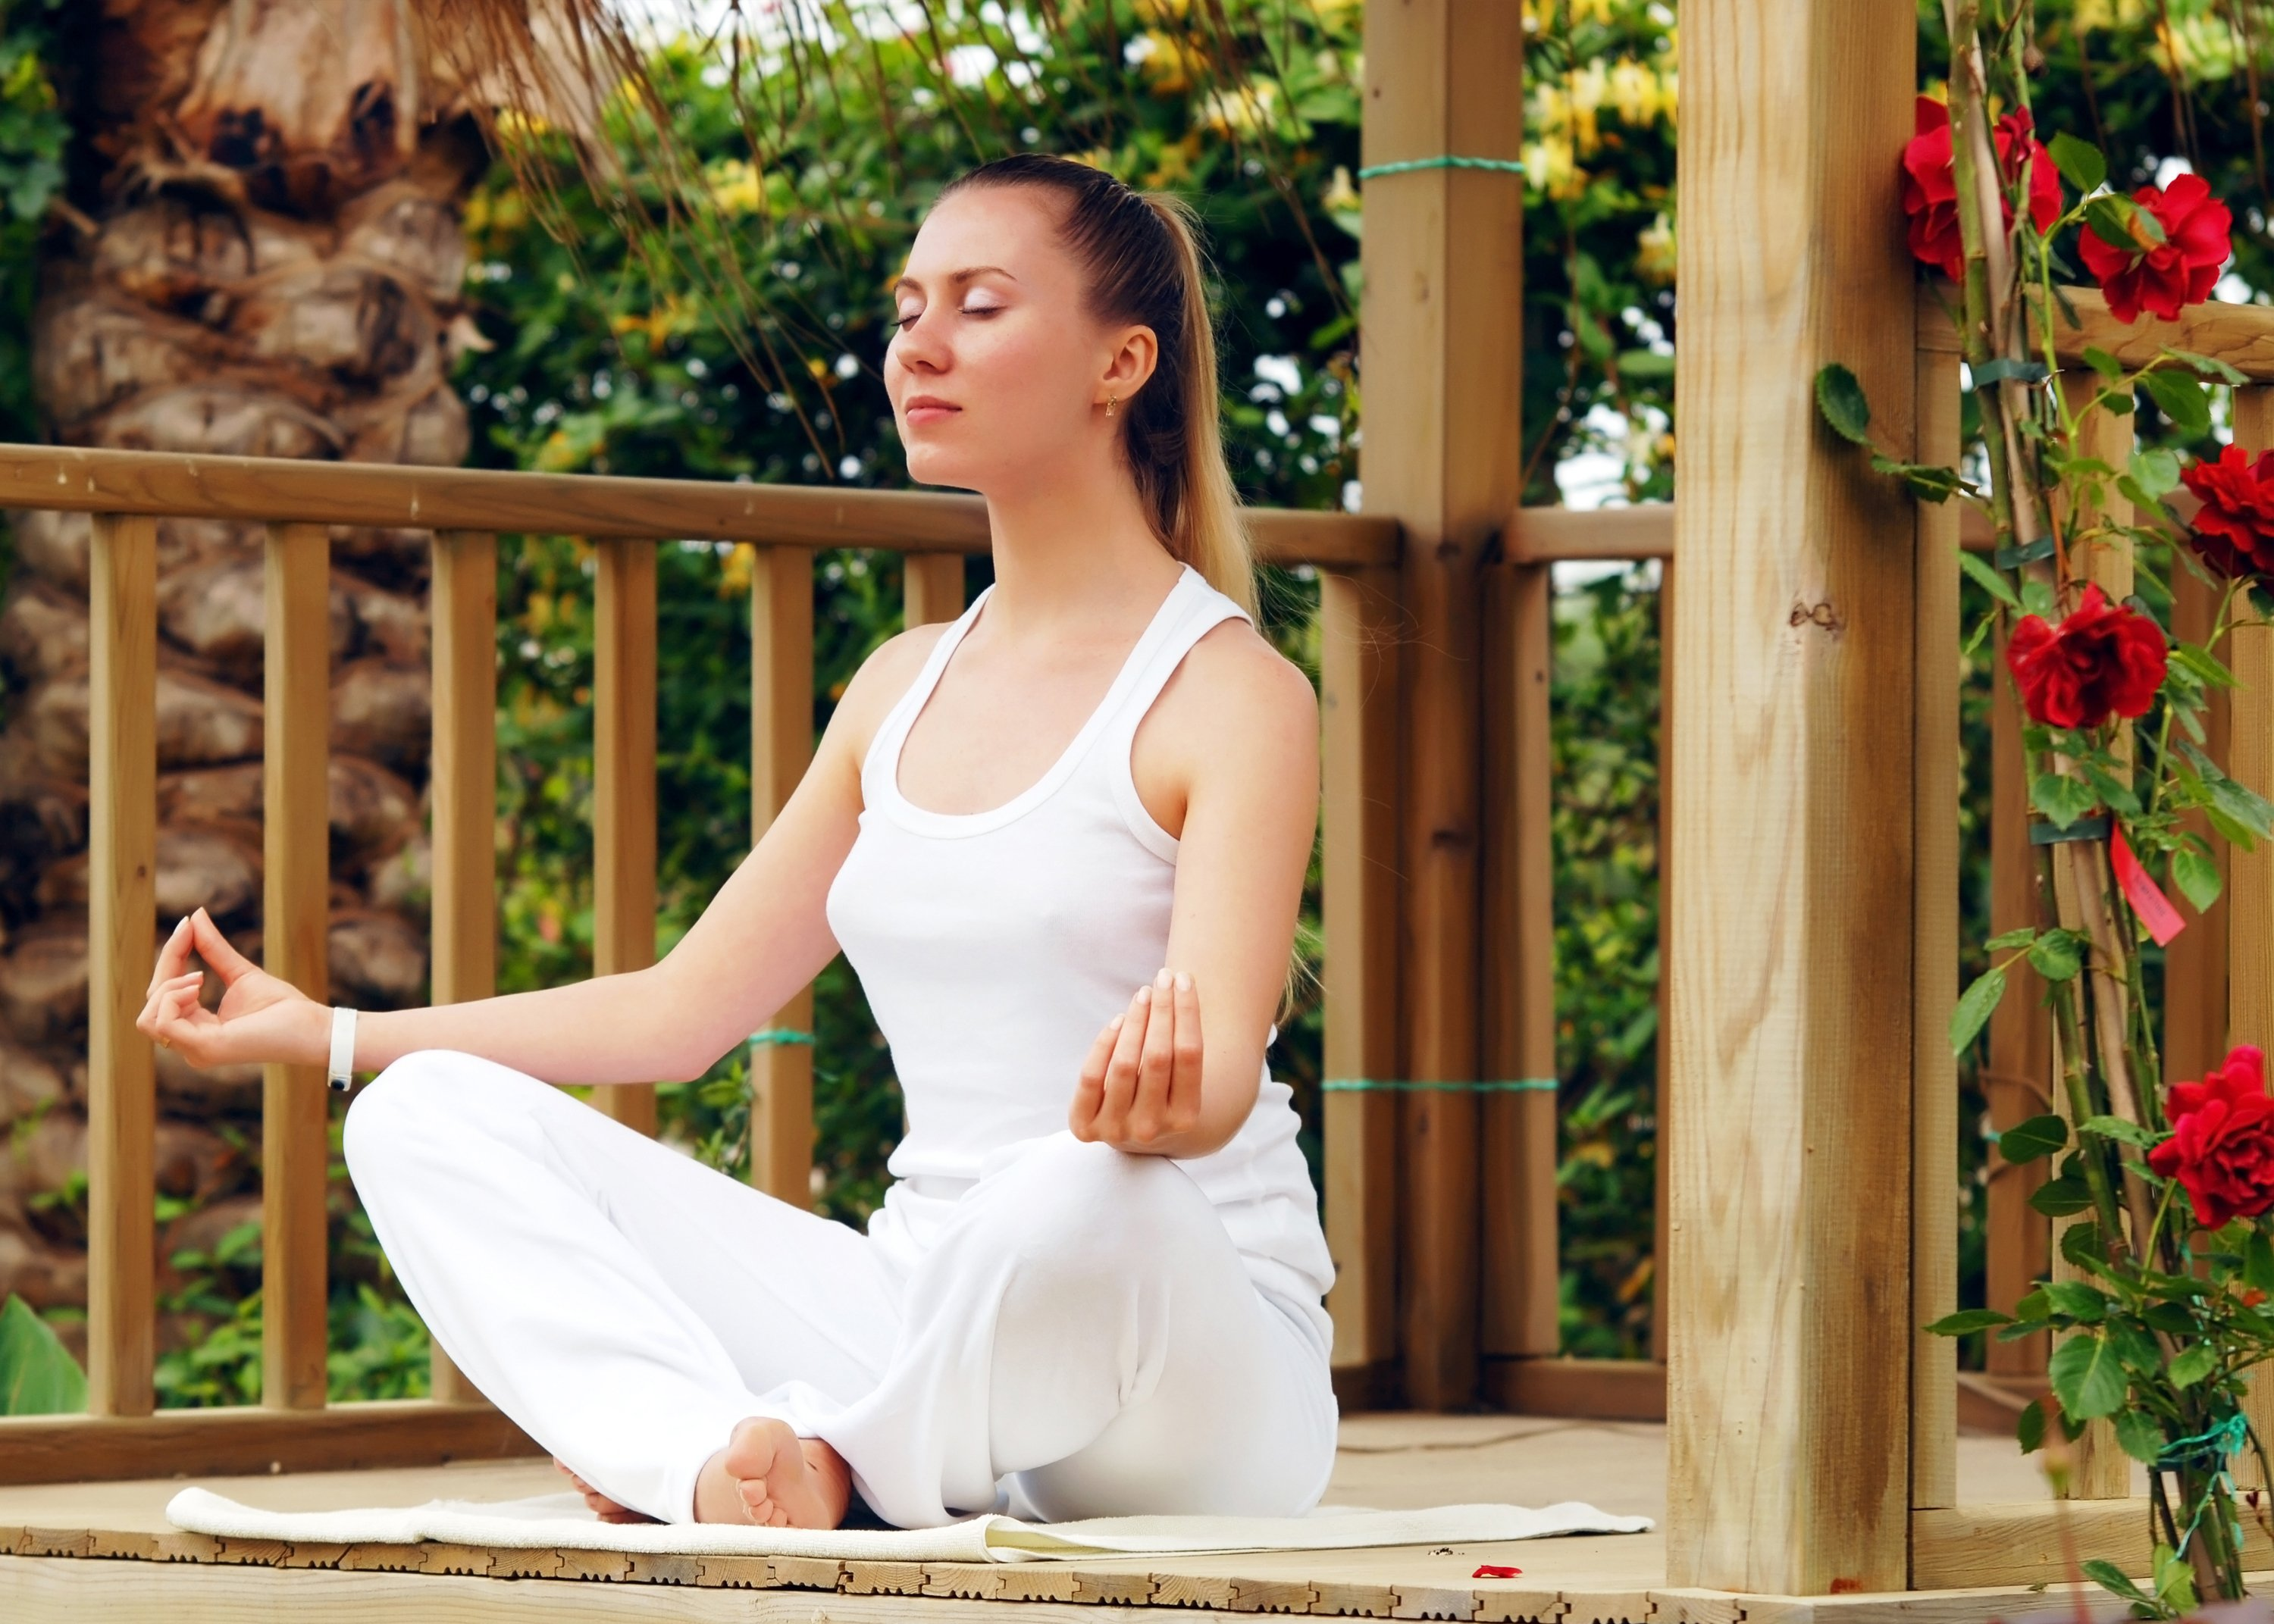 7 Reasons Why Dharamshala Is The Best Place To Learn Yoga